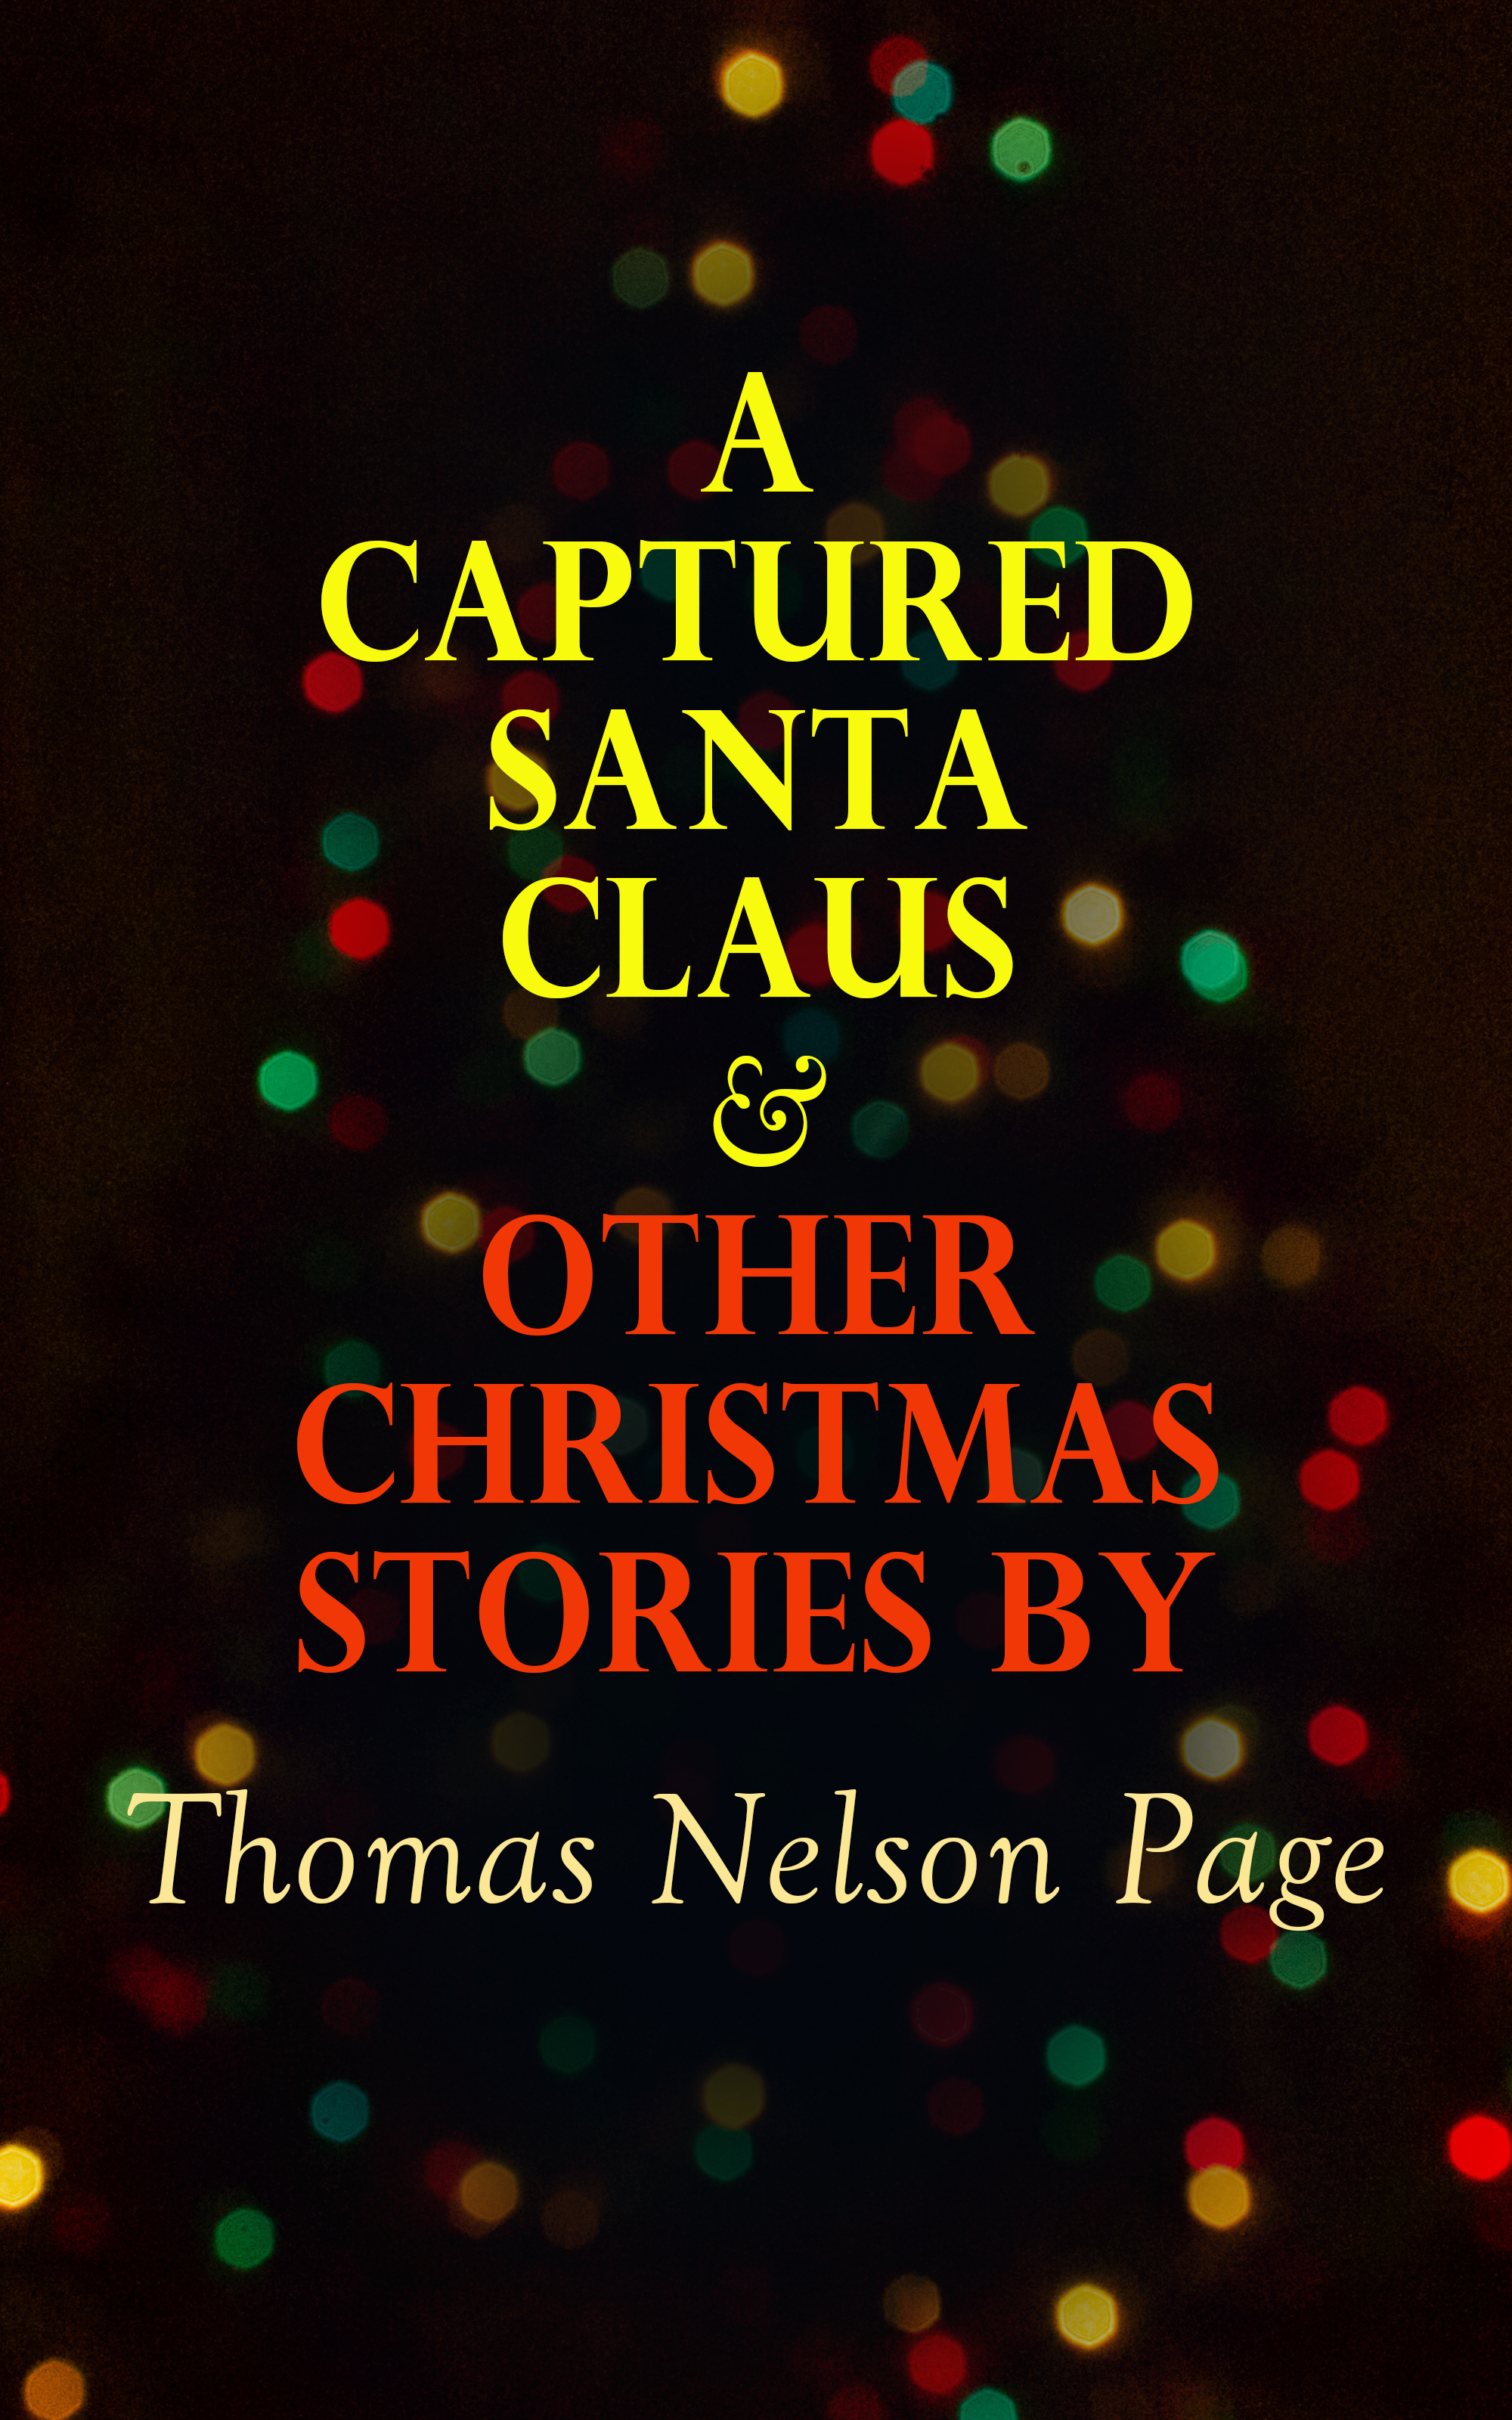 Thomas Nelson Page A Captured Santa Claus & Other Christmas Stories by Thomas Nelson Page 525rx page 7